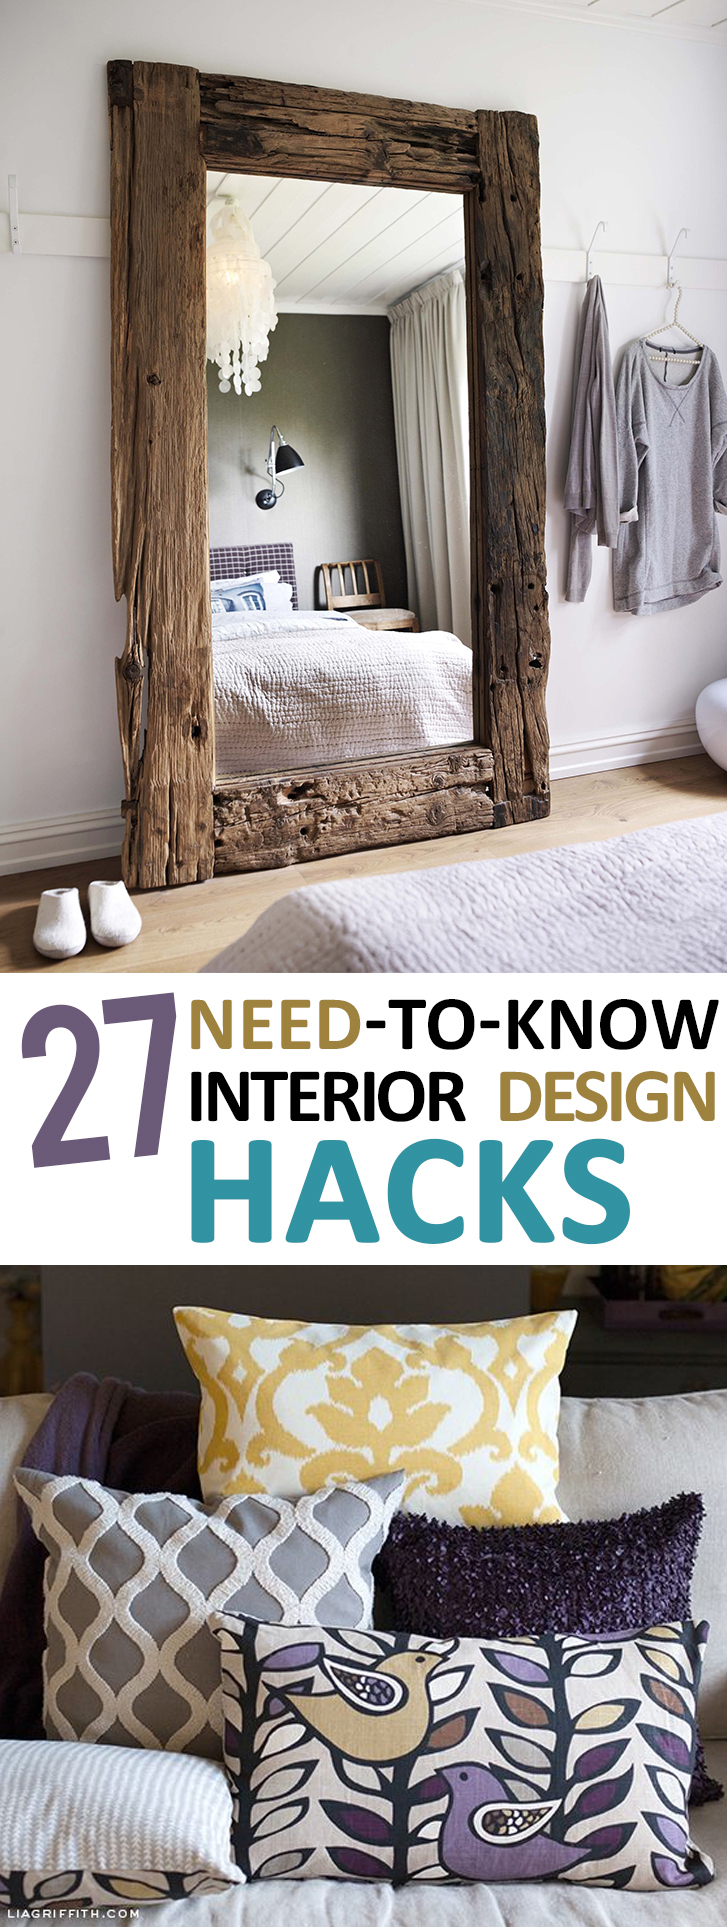 Interior Design, Interior Design Hacks, Home Design, Home Decor, DIY Home Decor, Easy DIYs, Interior Design Tips, Popular Pin, Design Hacks